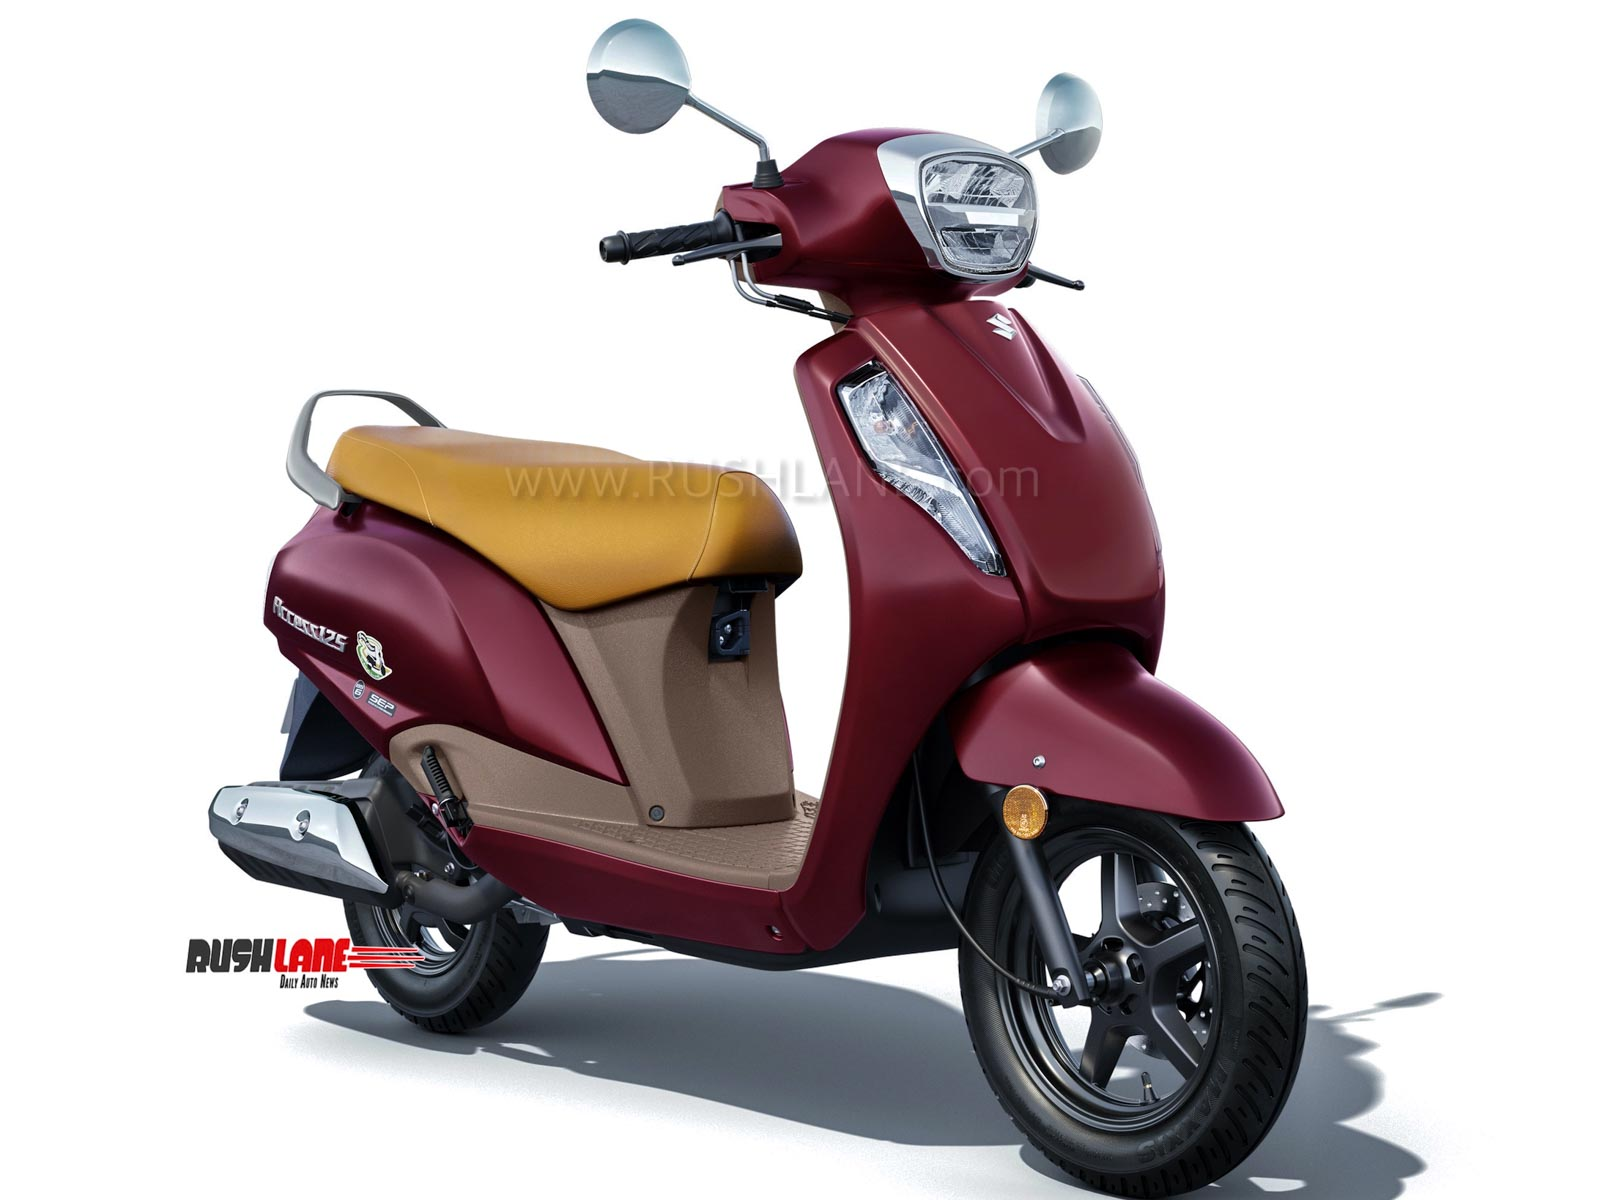 2020 Suzuki Access 125 BS6 launch